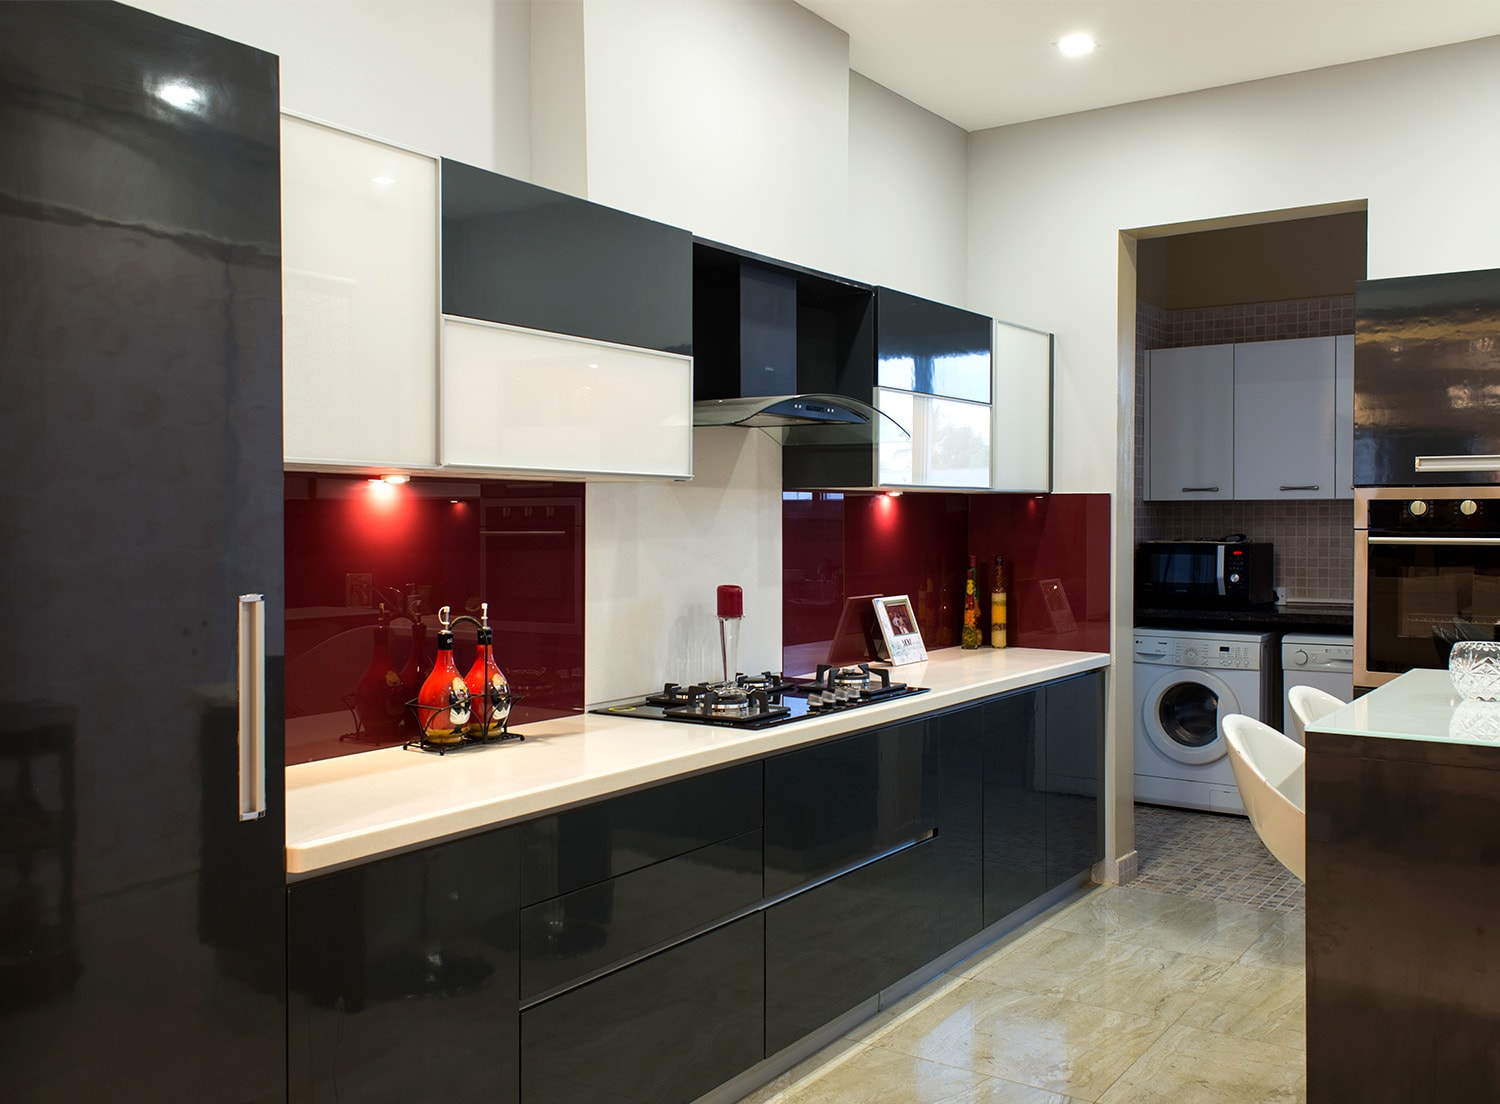 Home interiors by homelane modular kitchens wardrobes for M kitchen hyderabad